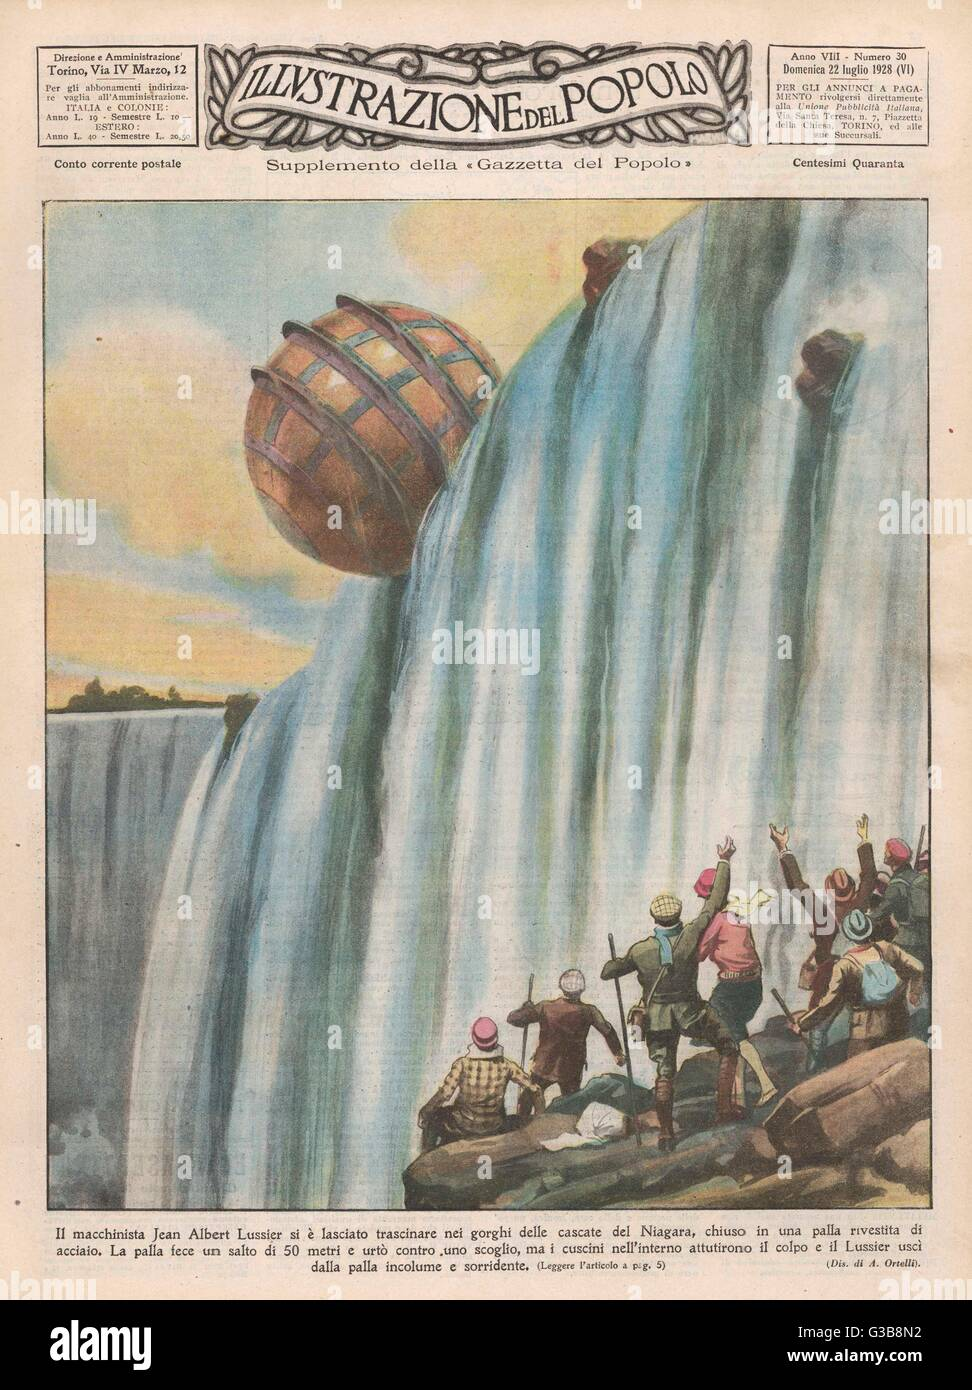 Jean Albert Lussier goes over  Niagara enclosed in a steel  sphere and comes out smiling,  despite hitting a rock - Stock Image